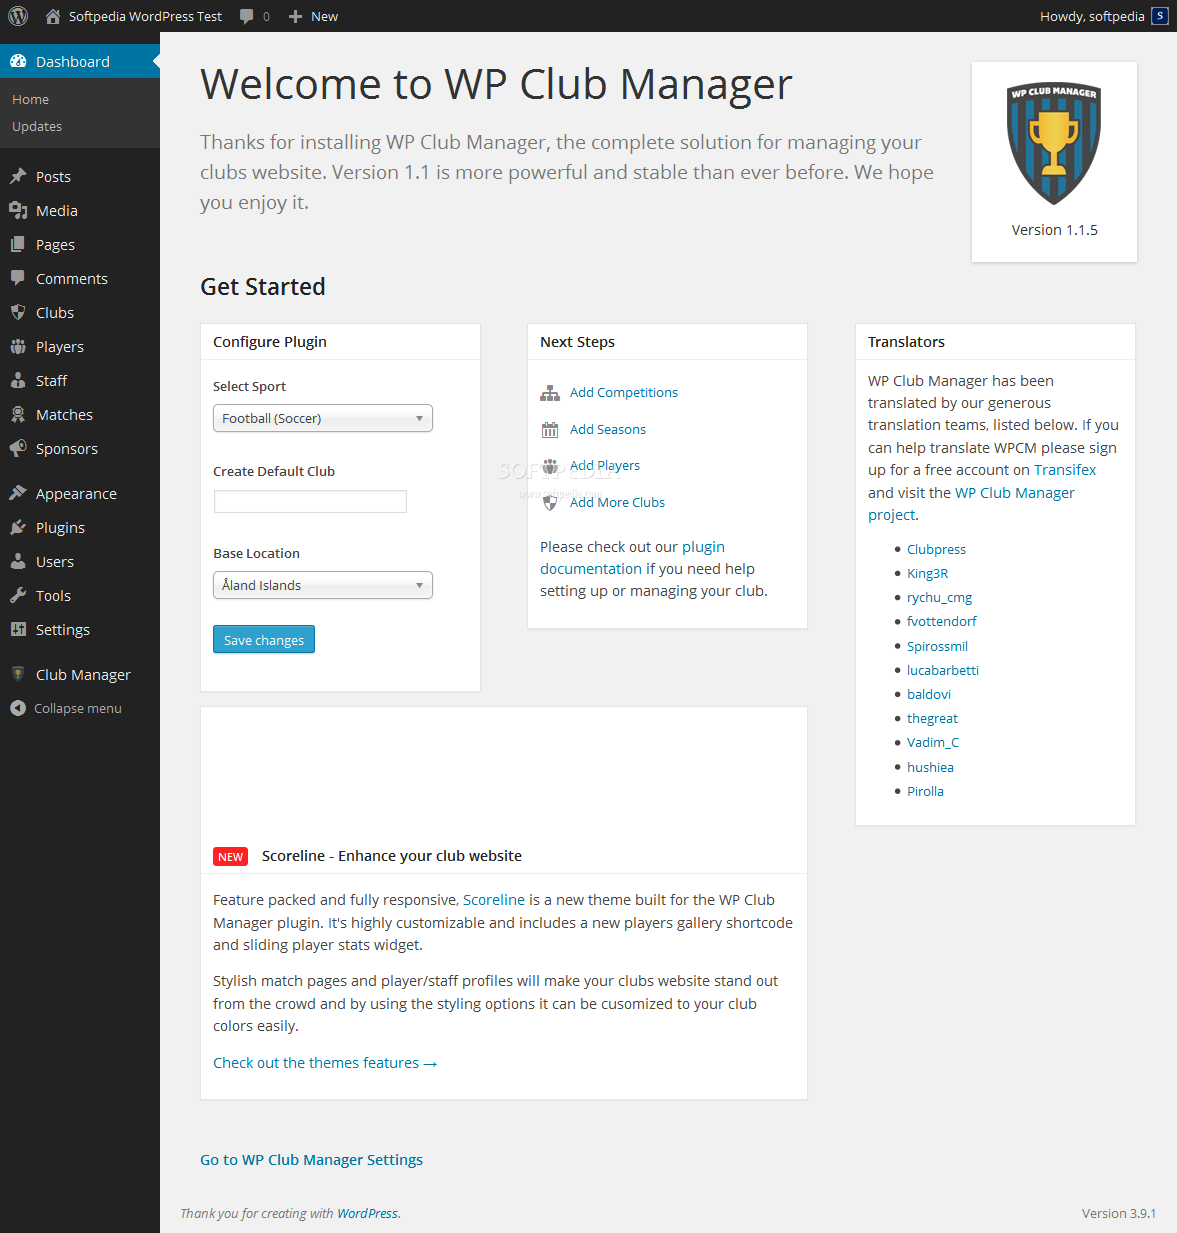 WP Club Manager - Once installed, the WP Club Manager plugin will redirect the user to a quick options panel